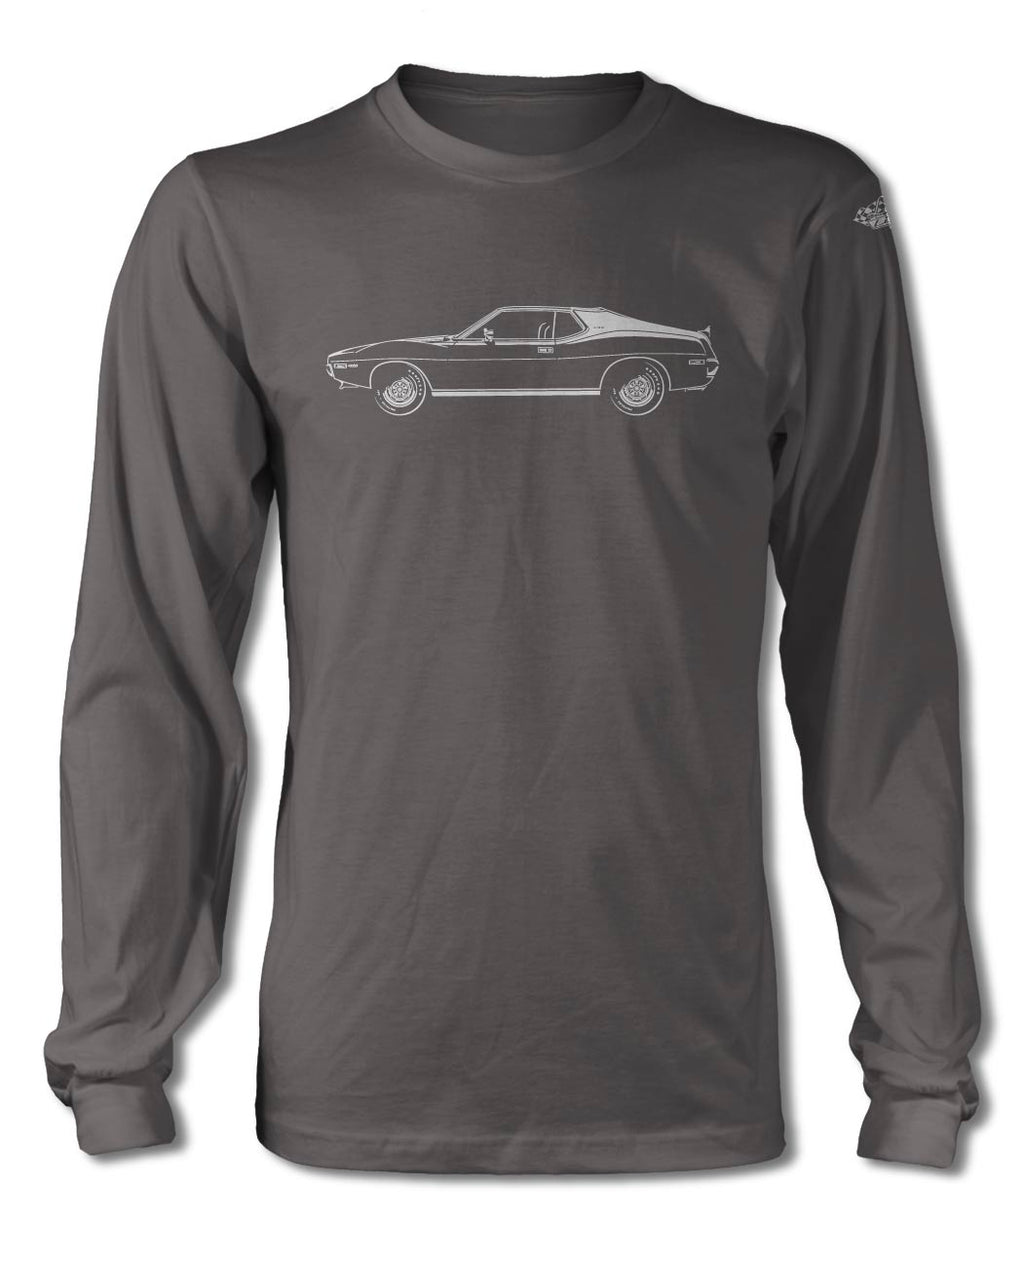 1971 AMC AMX Coupe T-Shirt - Long Sleeves - Side View